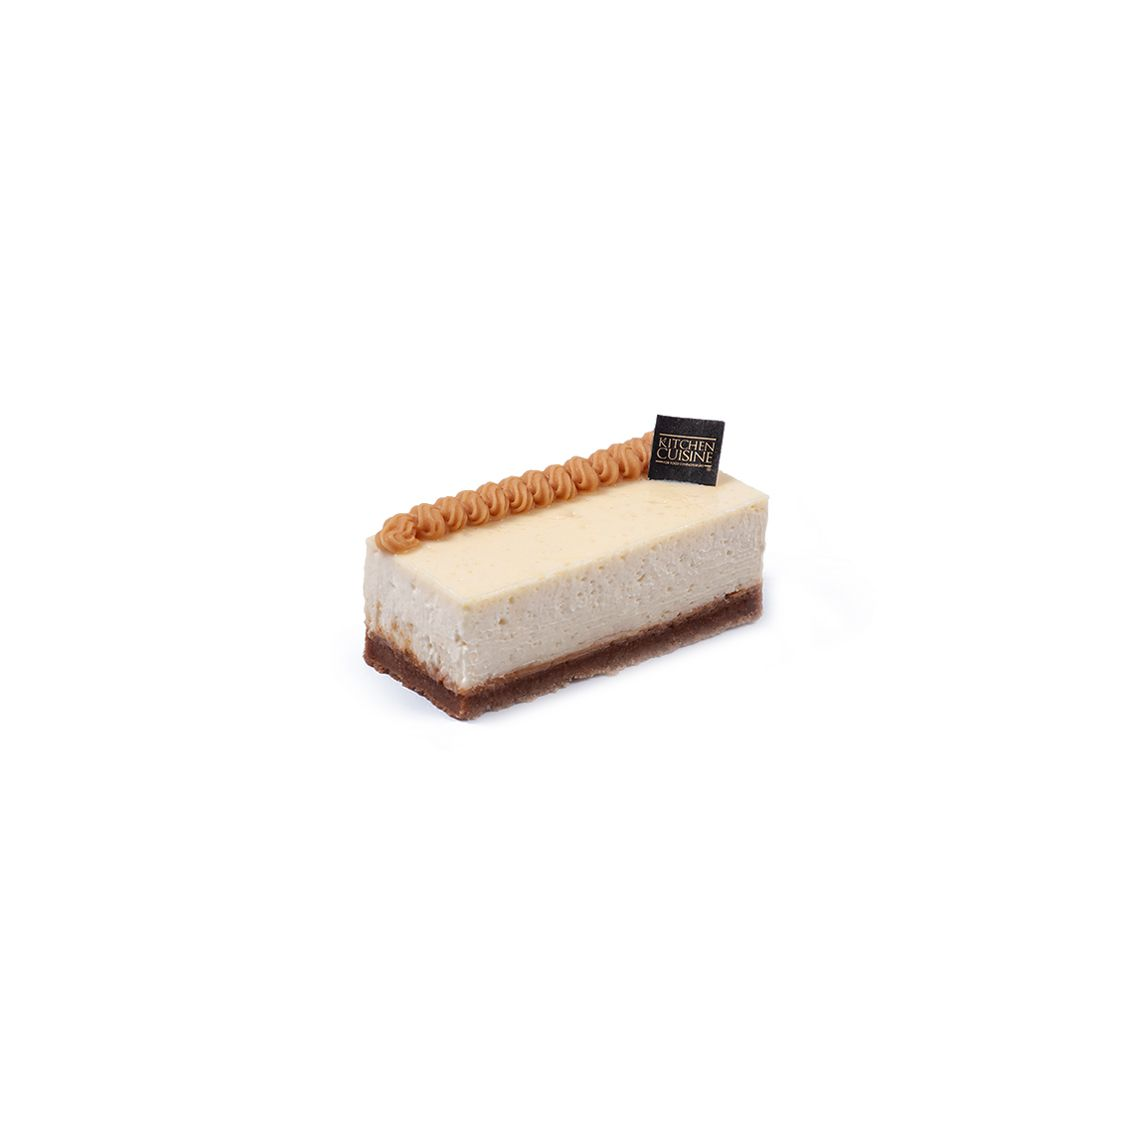 Kitchen Cuisine Default Category Toffee Vanilla Baked Cheese Cake